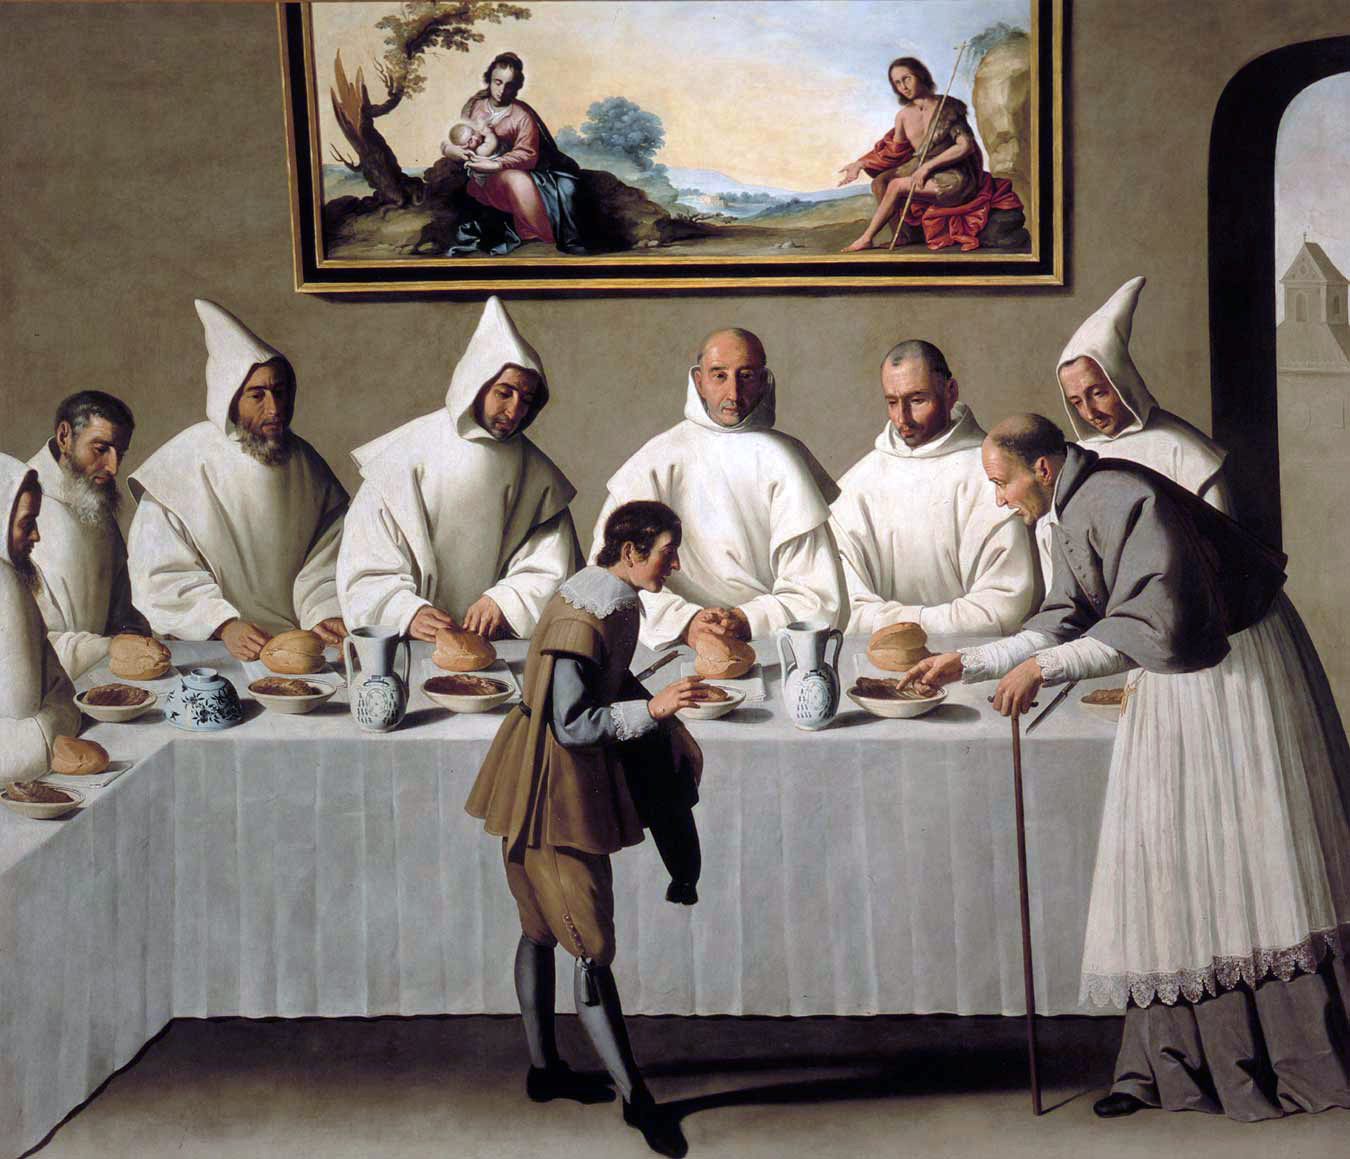 Saint Hugh in the Refectory Francisco de Zurbarán